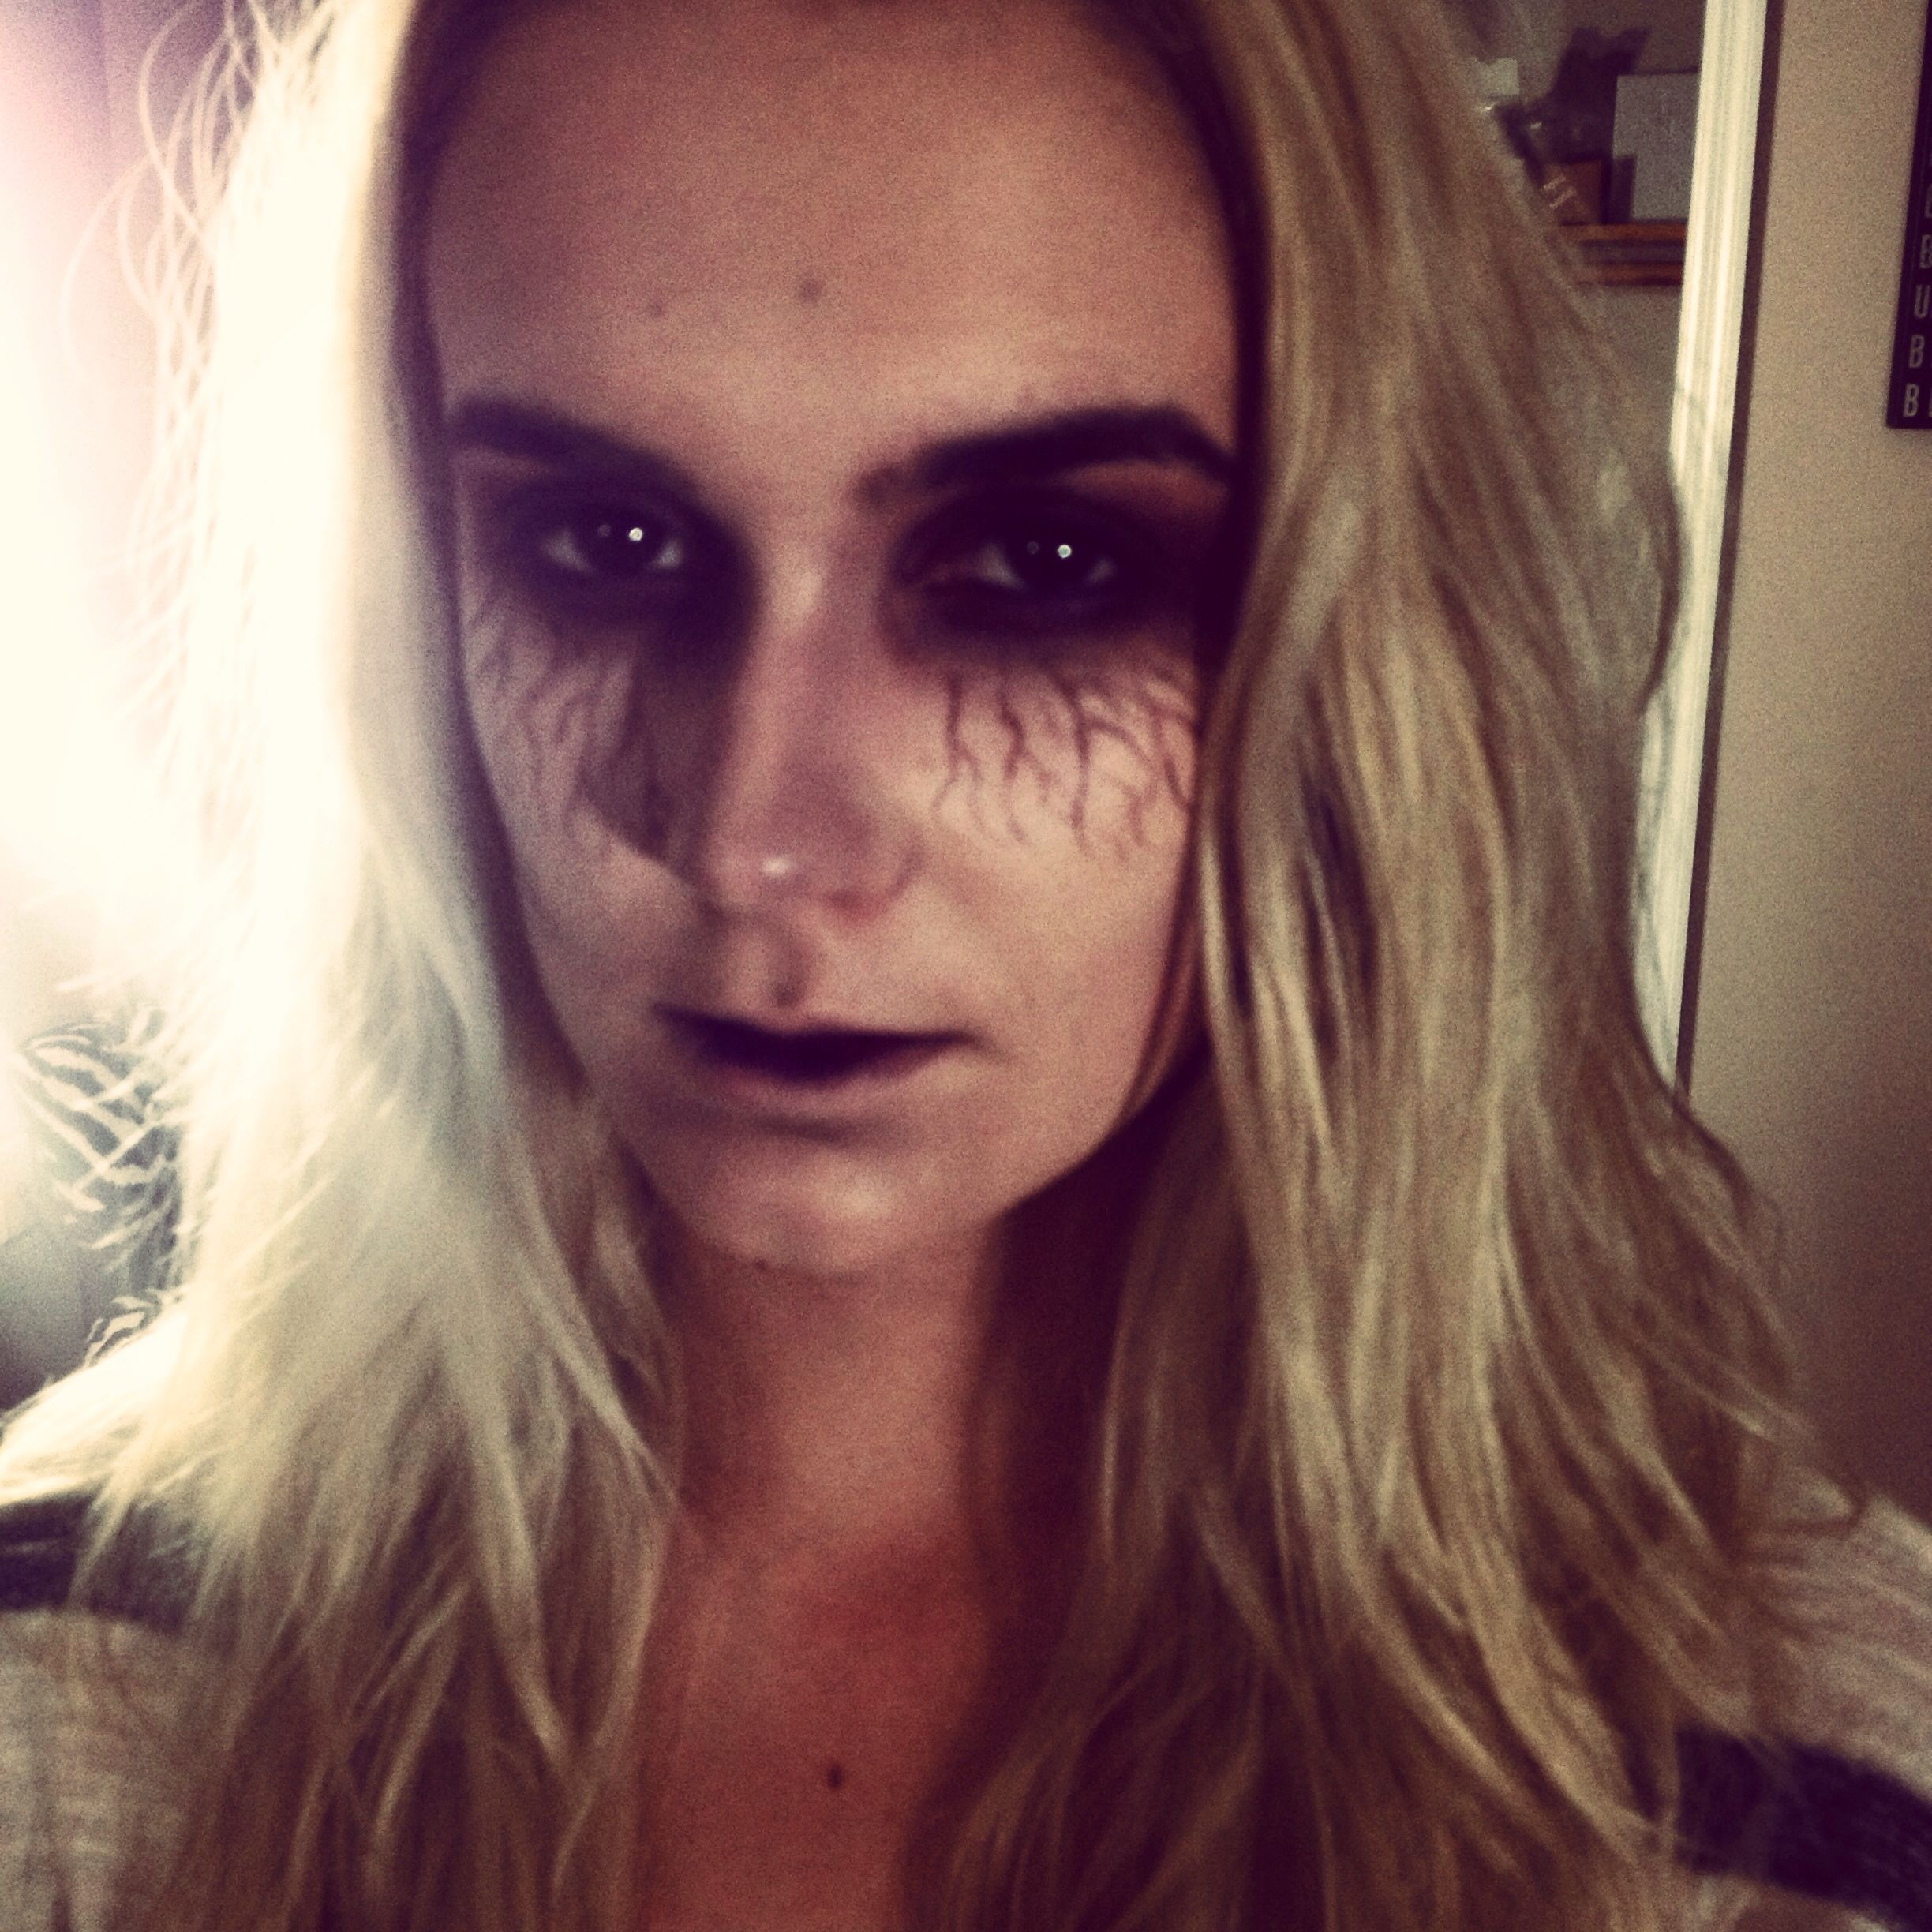 halloween #makeup #mua | Make-up & Beauty | Pinterest | Halloween ...